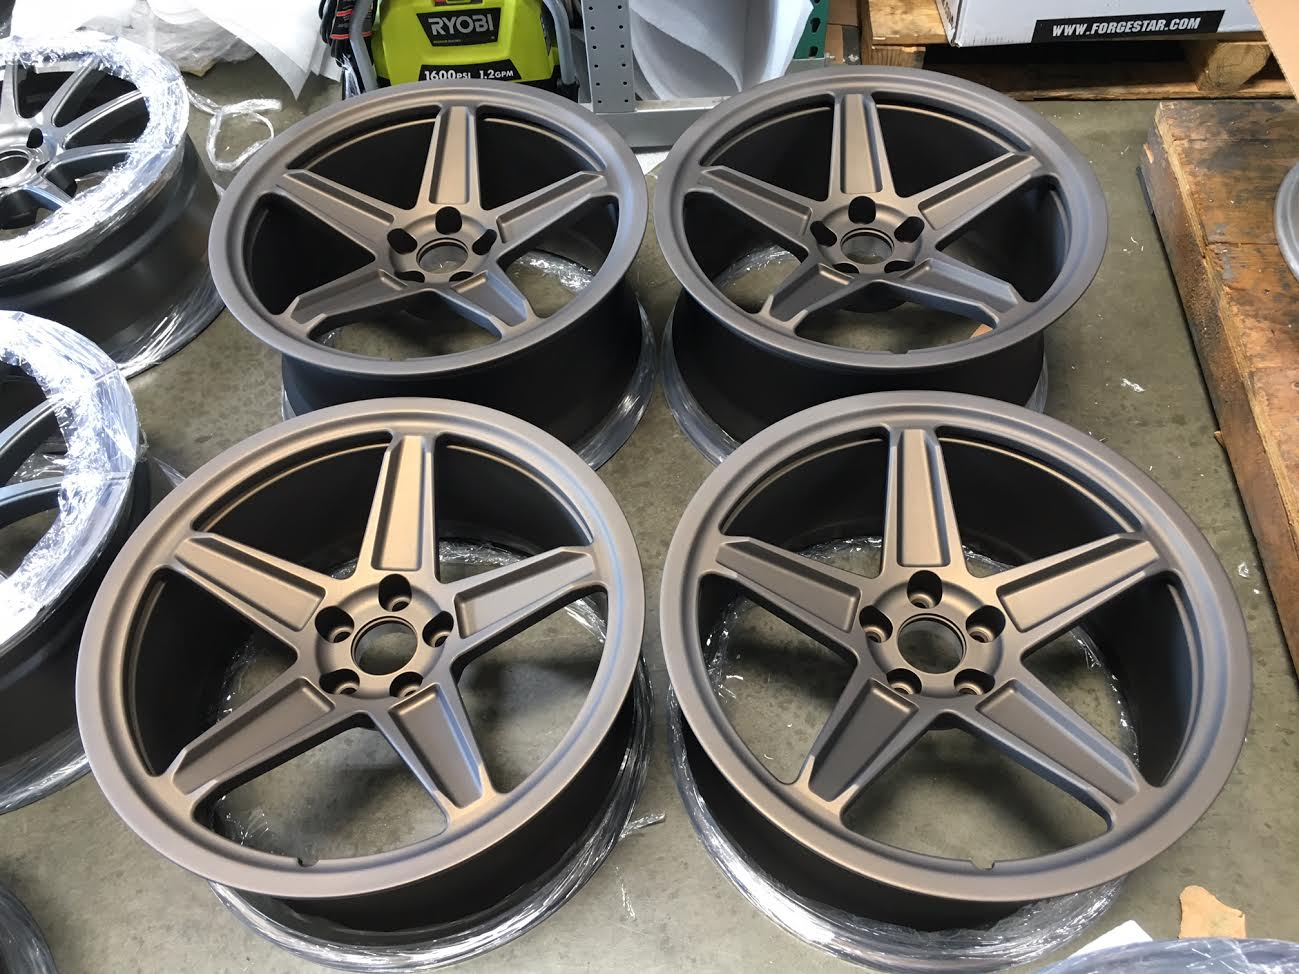 2018 Demon Wheels Reproduction in 3 colors | Page 2 | SRT ...